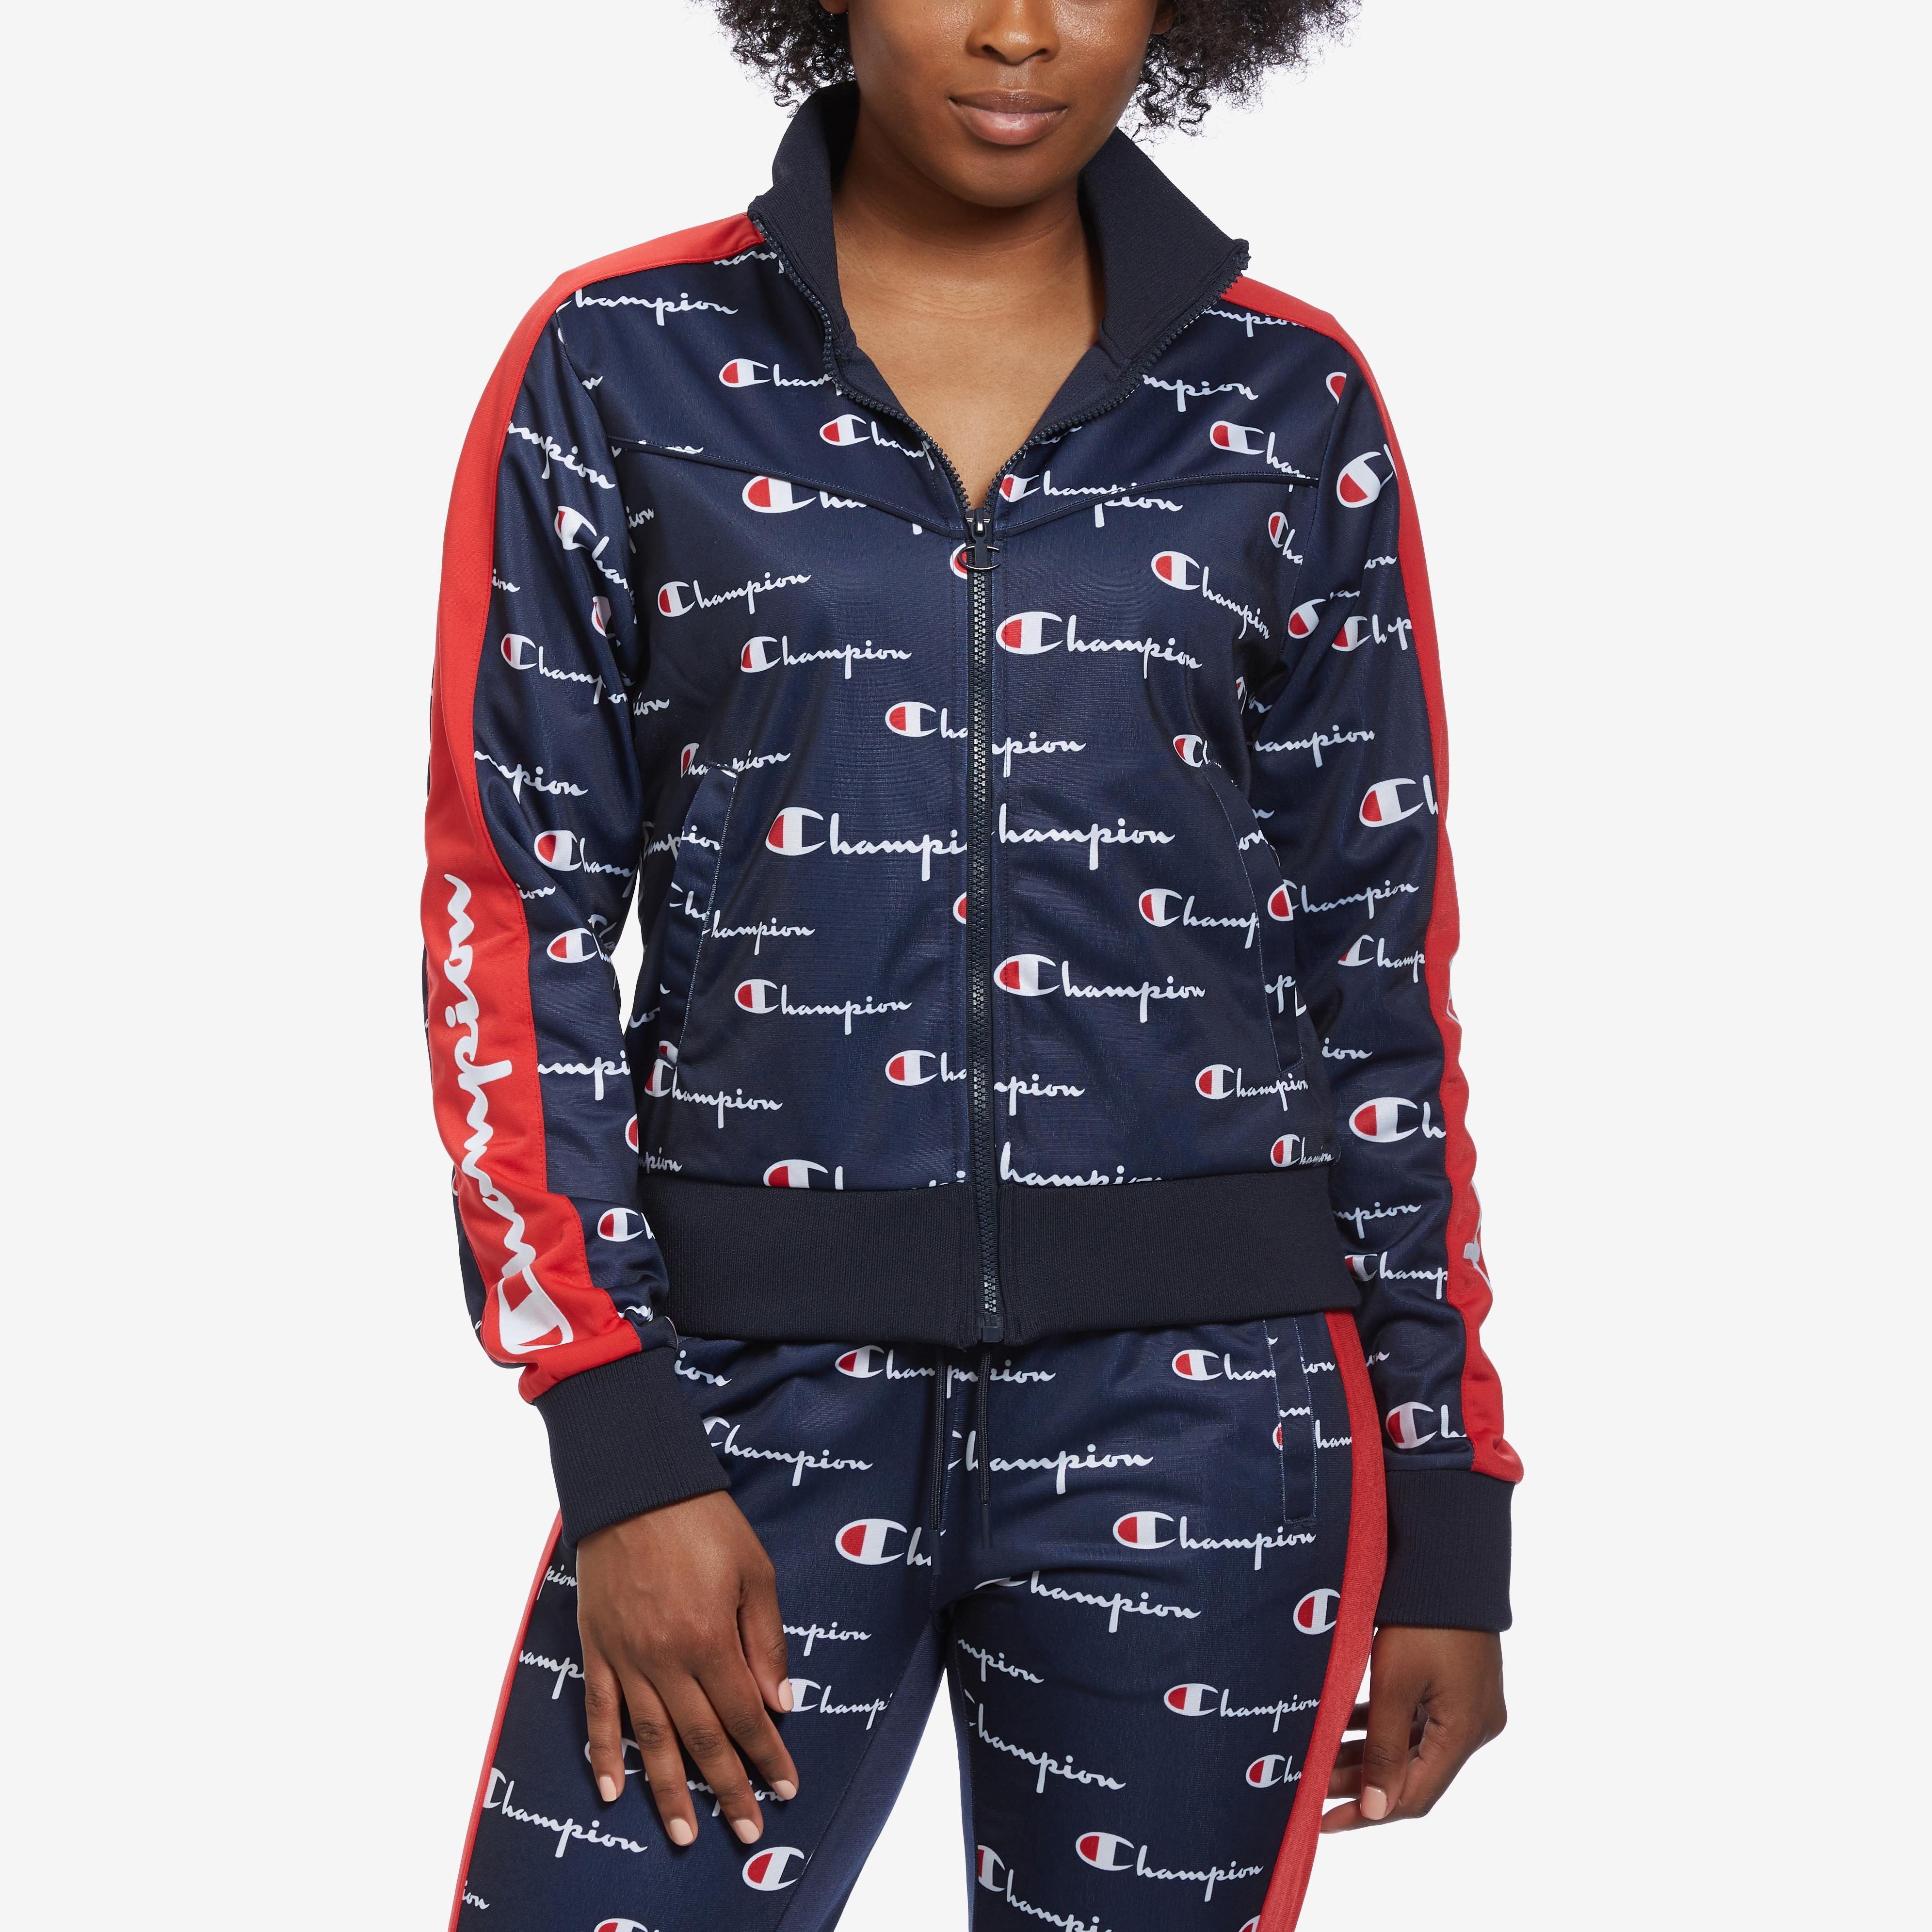 Tricot Track Jacket, All Over Print